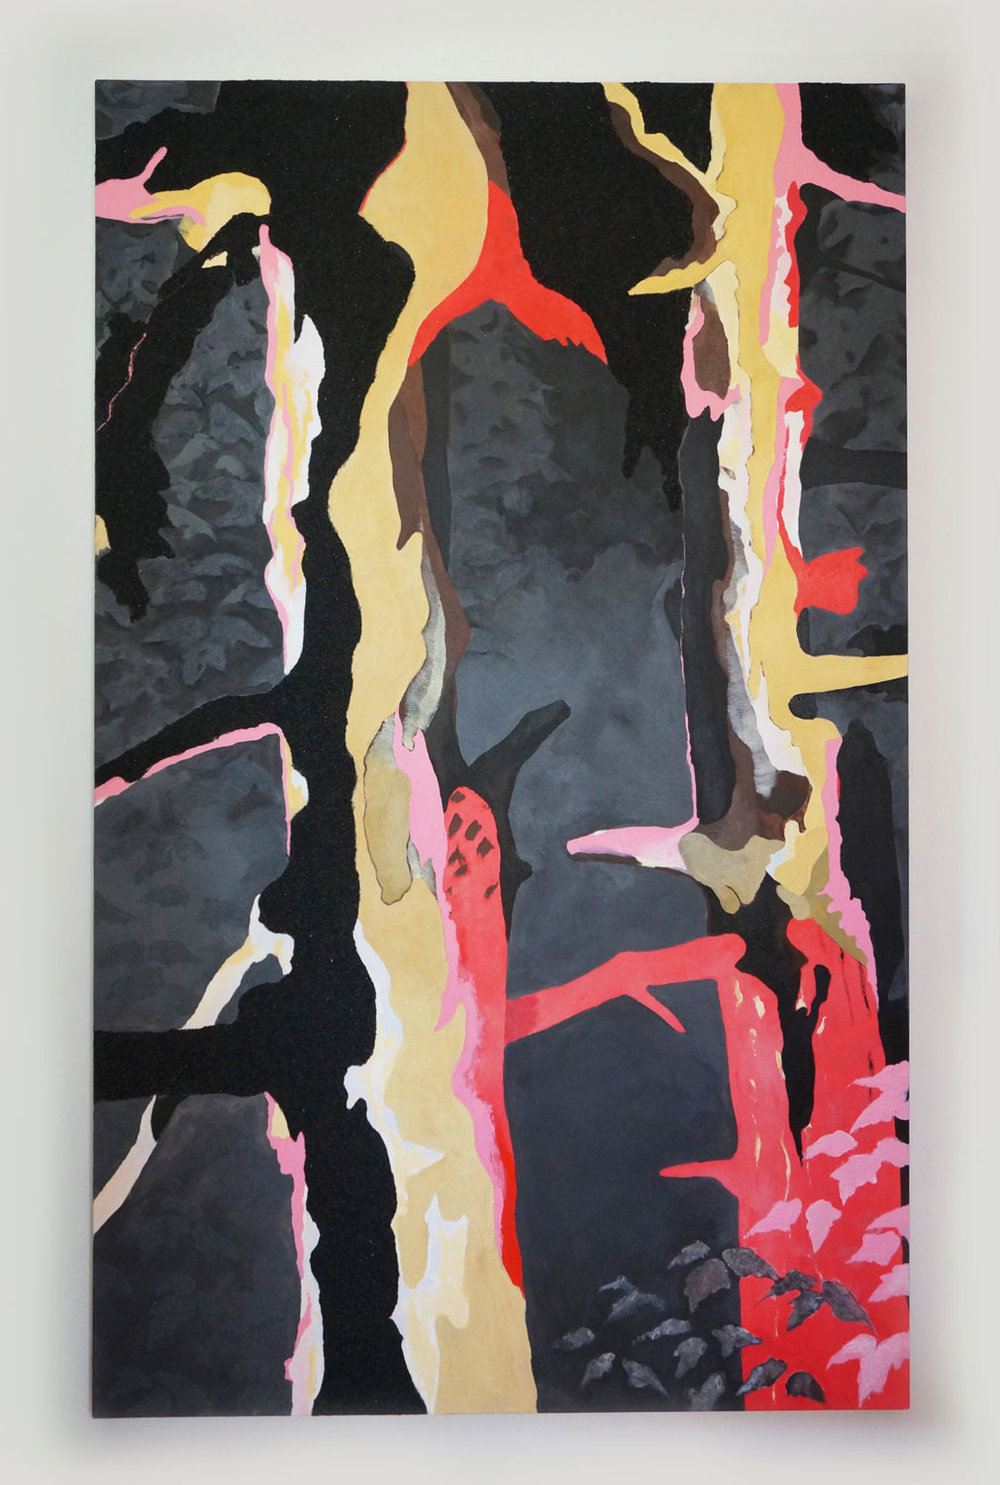 Waiting and Watching, 2017, acrylic polymers, rayon, coal on Canvas, 72in x 44in